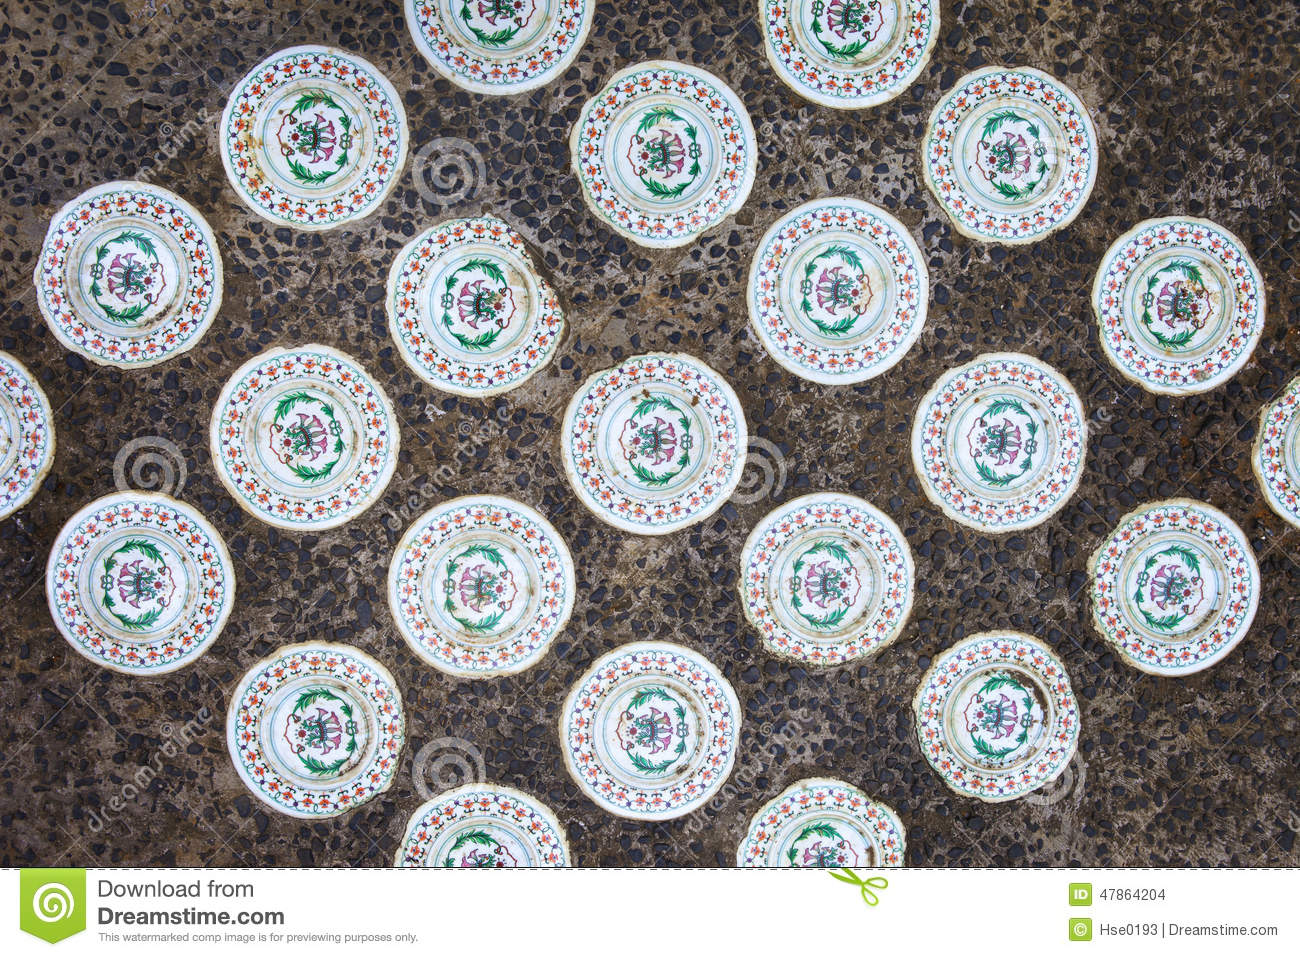 Chinese ceramic tiles stock photo image of ancient architectural royalty free stock photo download chinese ceramic tiles dailygadgetfo Image collections